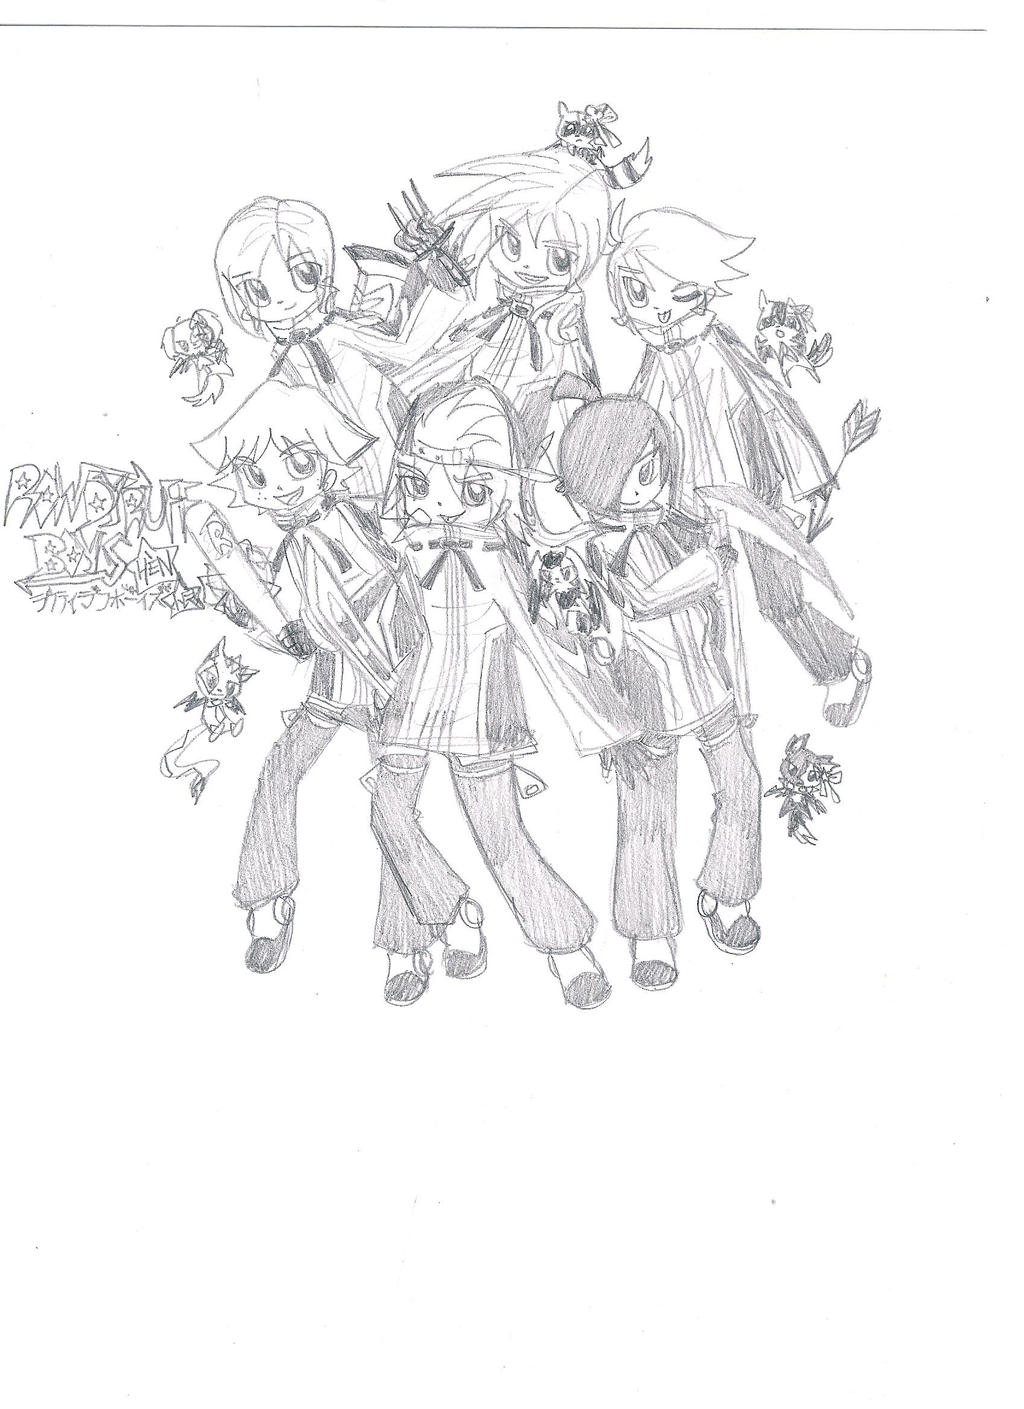 preview poster image rowdyruff boys hen sketch by kuku88 on